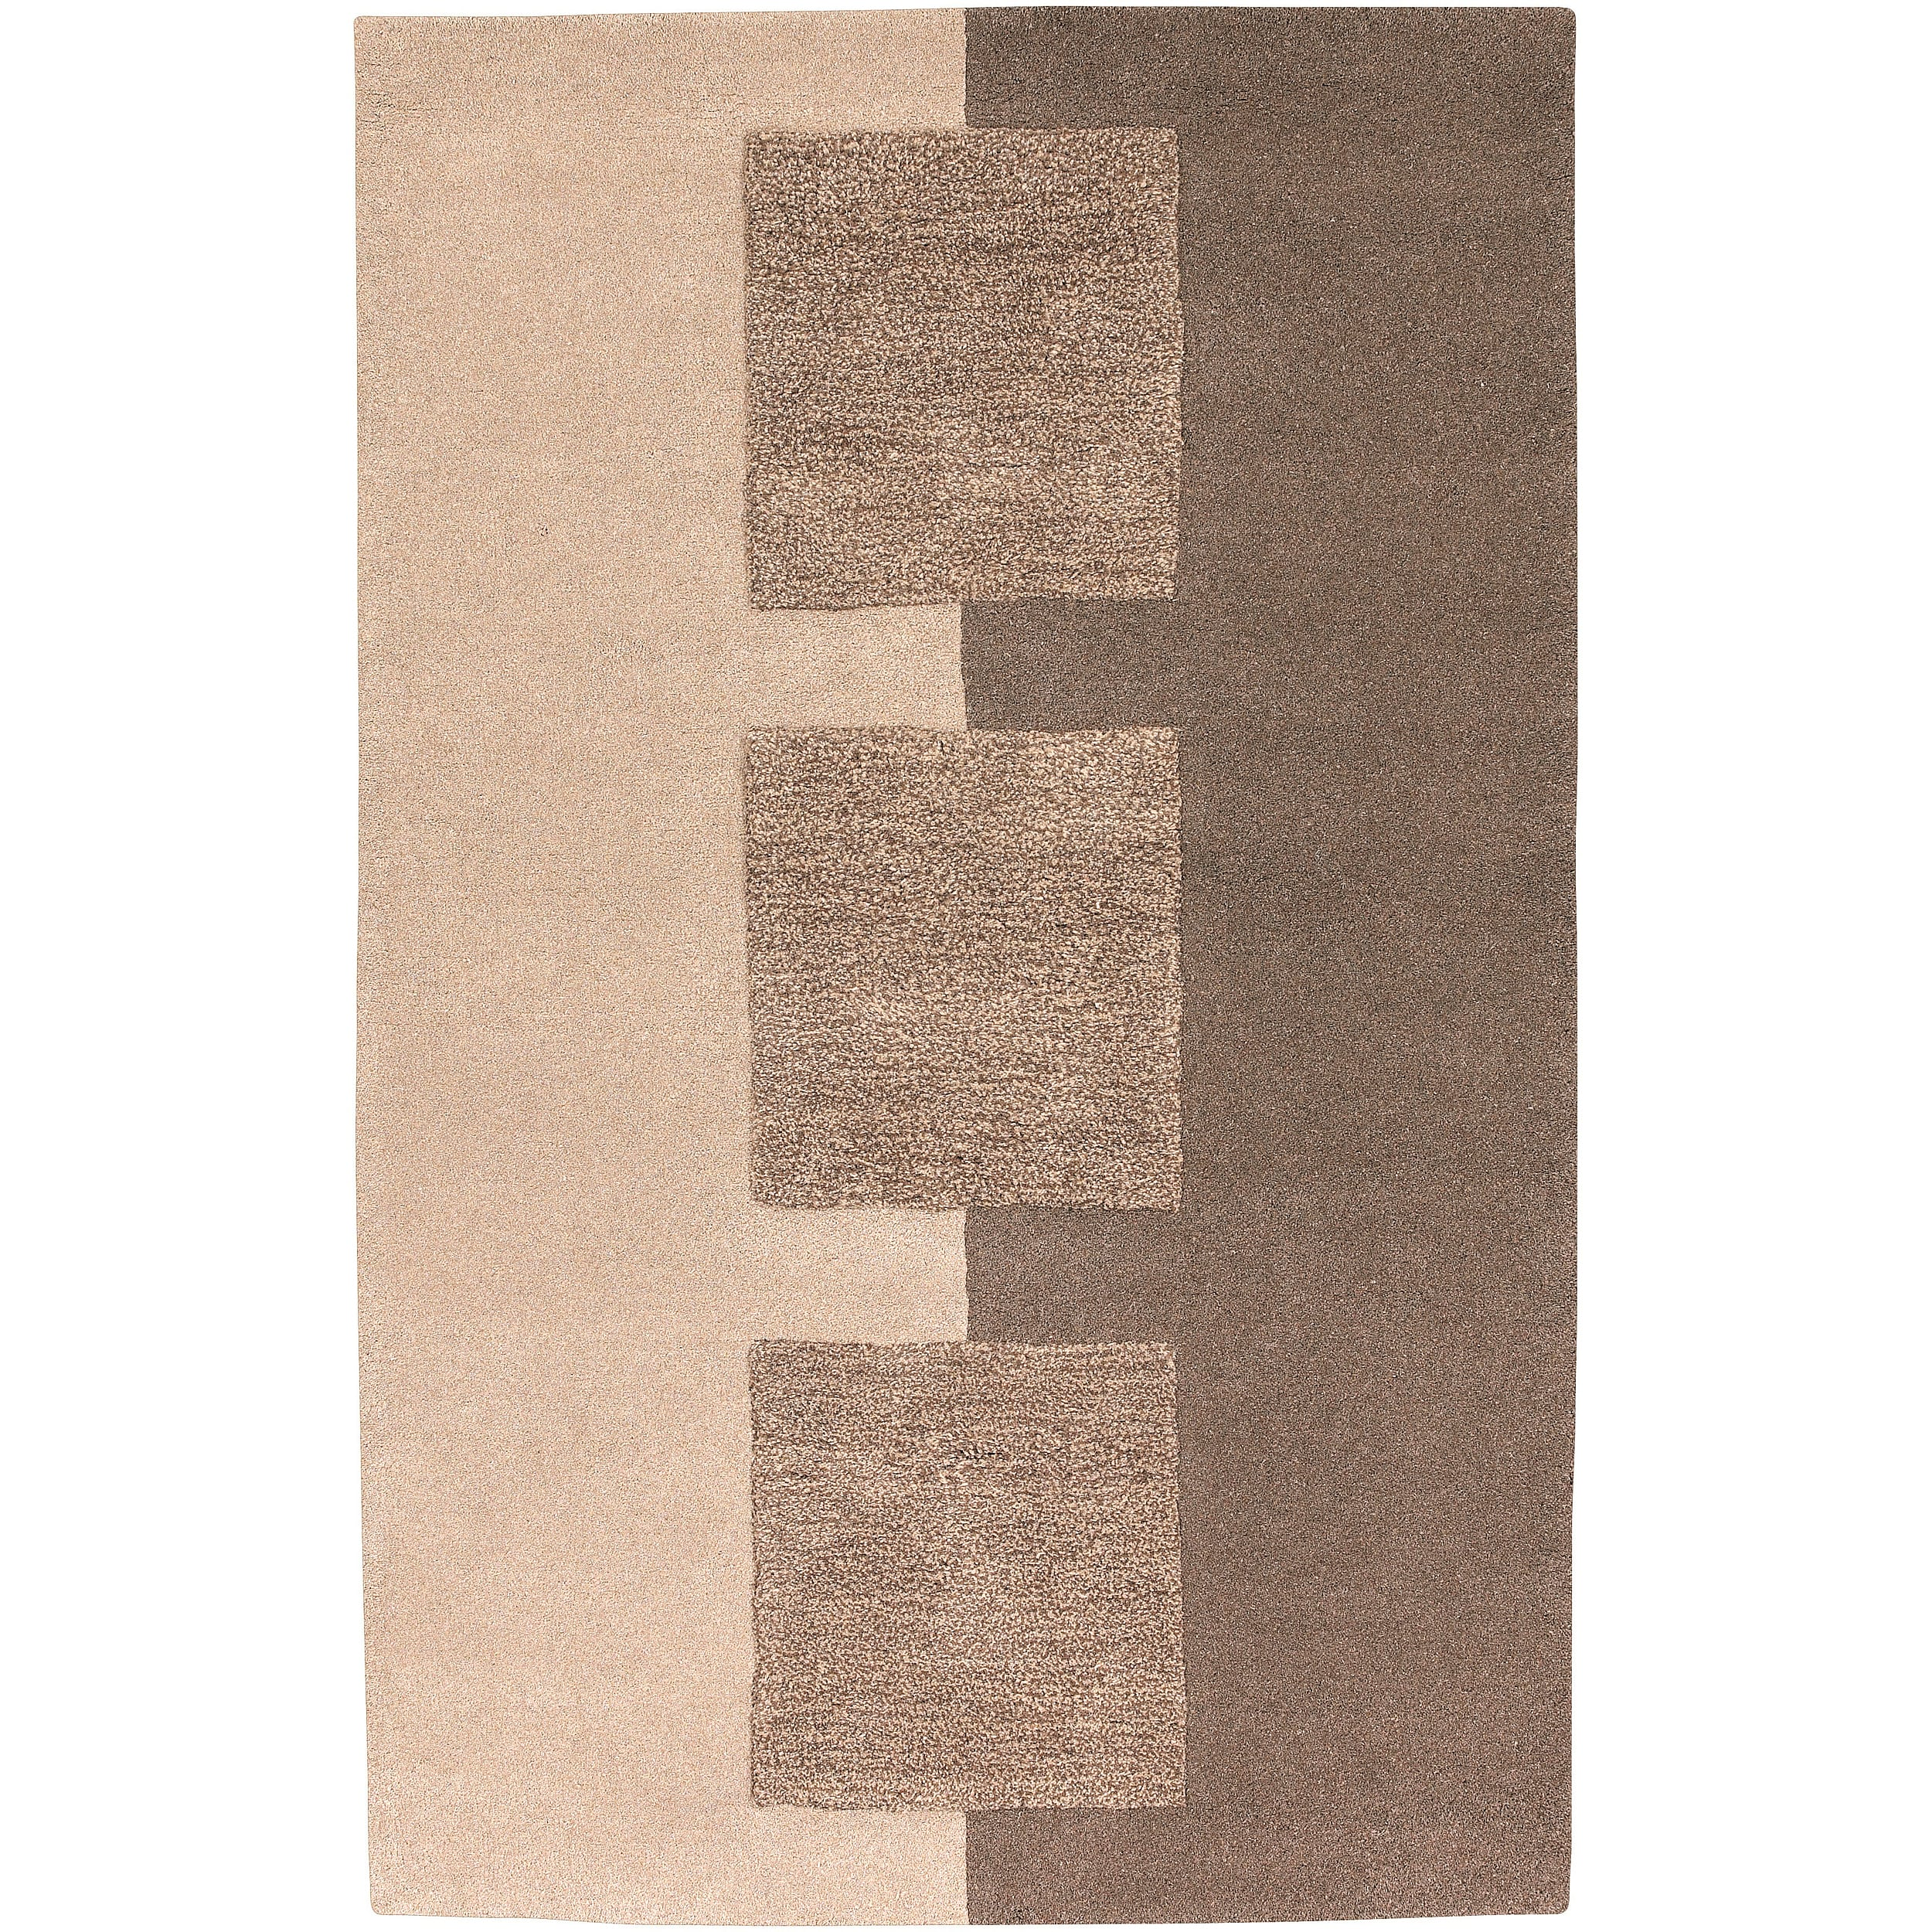 Hand-tufted Contemporary Brown Kanosh New Zealand Wool Abstract Rug (5' x 8')